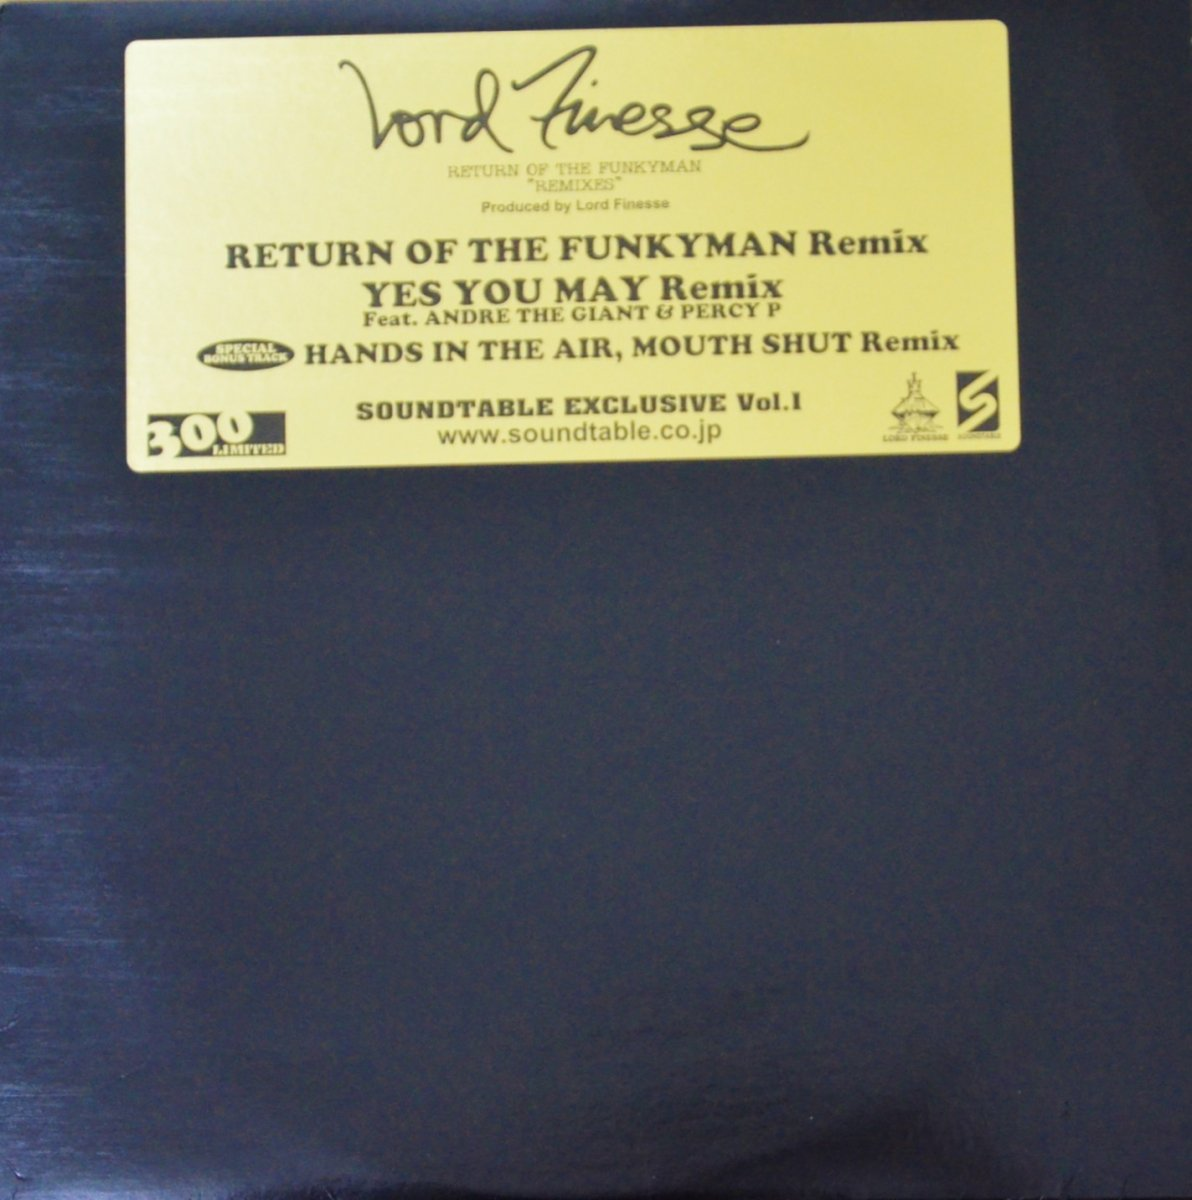 LORD FINESSE / RETURN OF THE FUNKYMAN